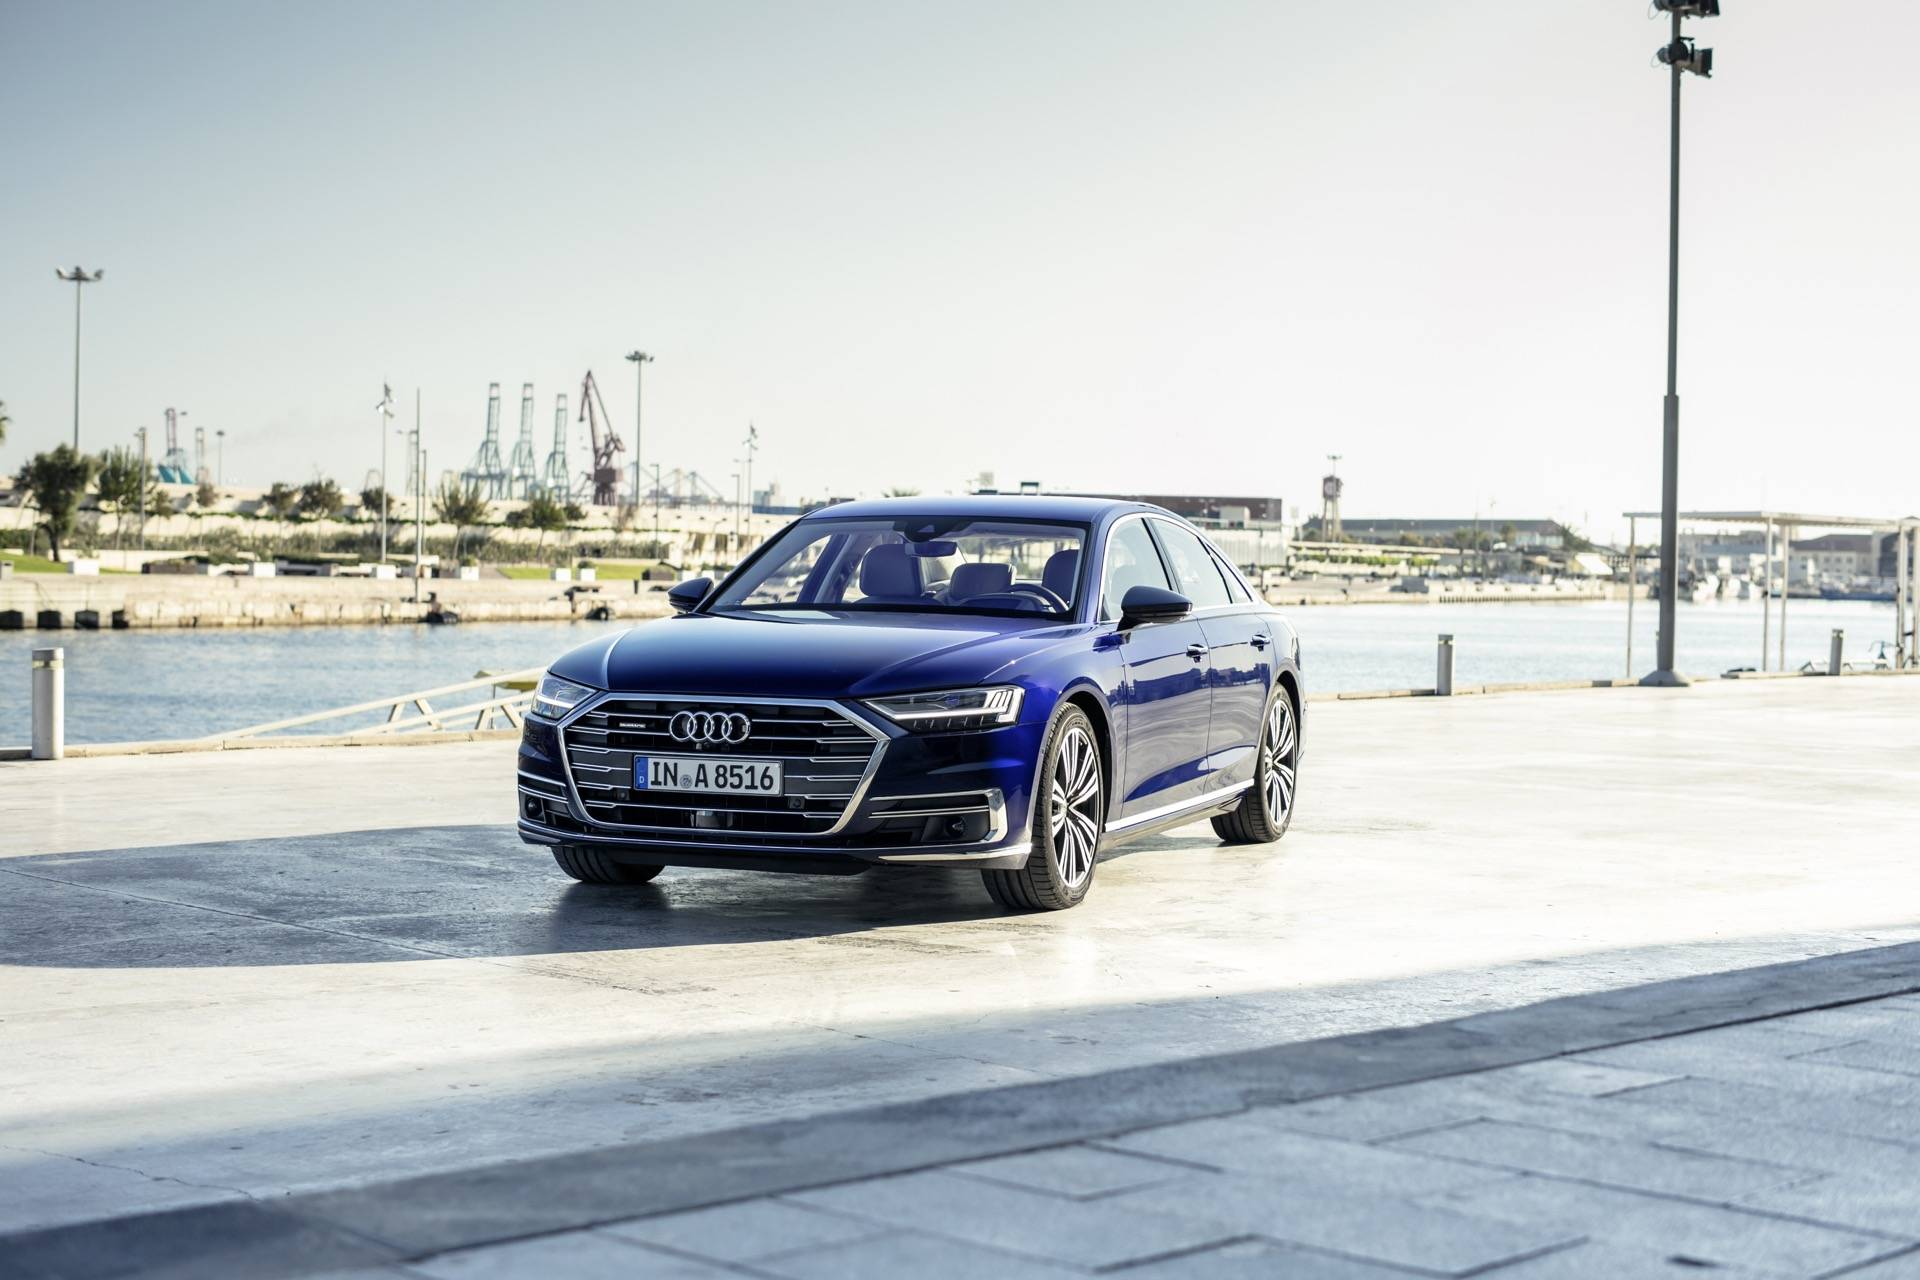 2018 audi a8.  audi 2018 audi a8 1 of 28 the  on audi a8